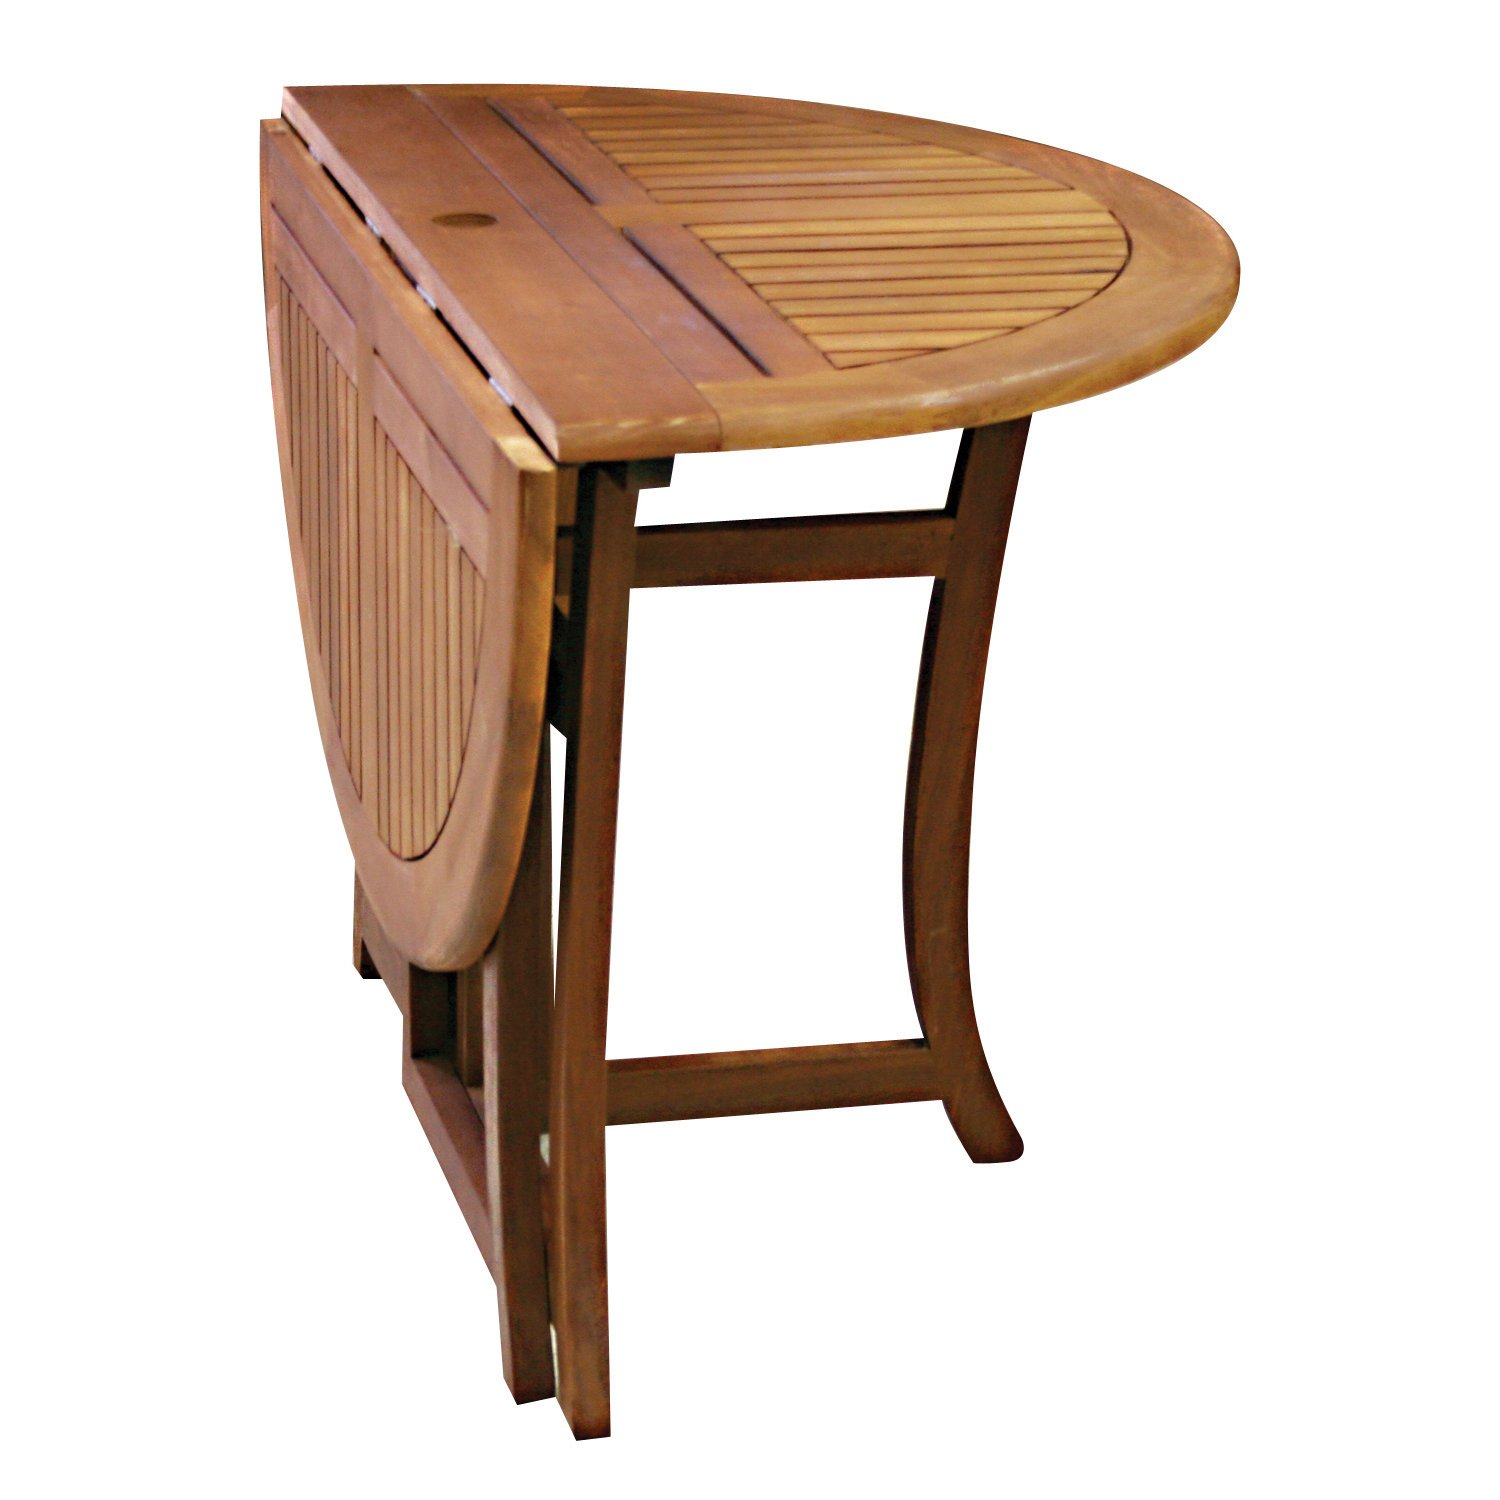 Amazon.com: Eucalyptus 43 Inch Round Folding Deck Table: Garden U0026 Outdoor